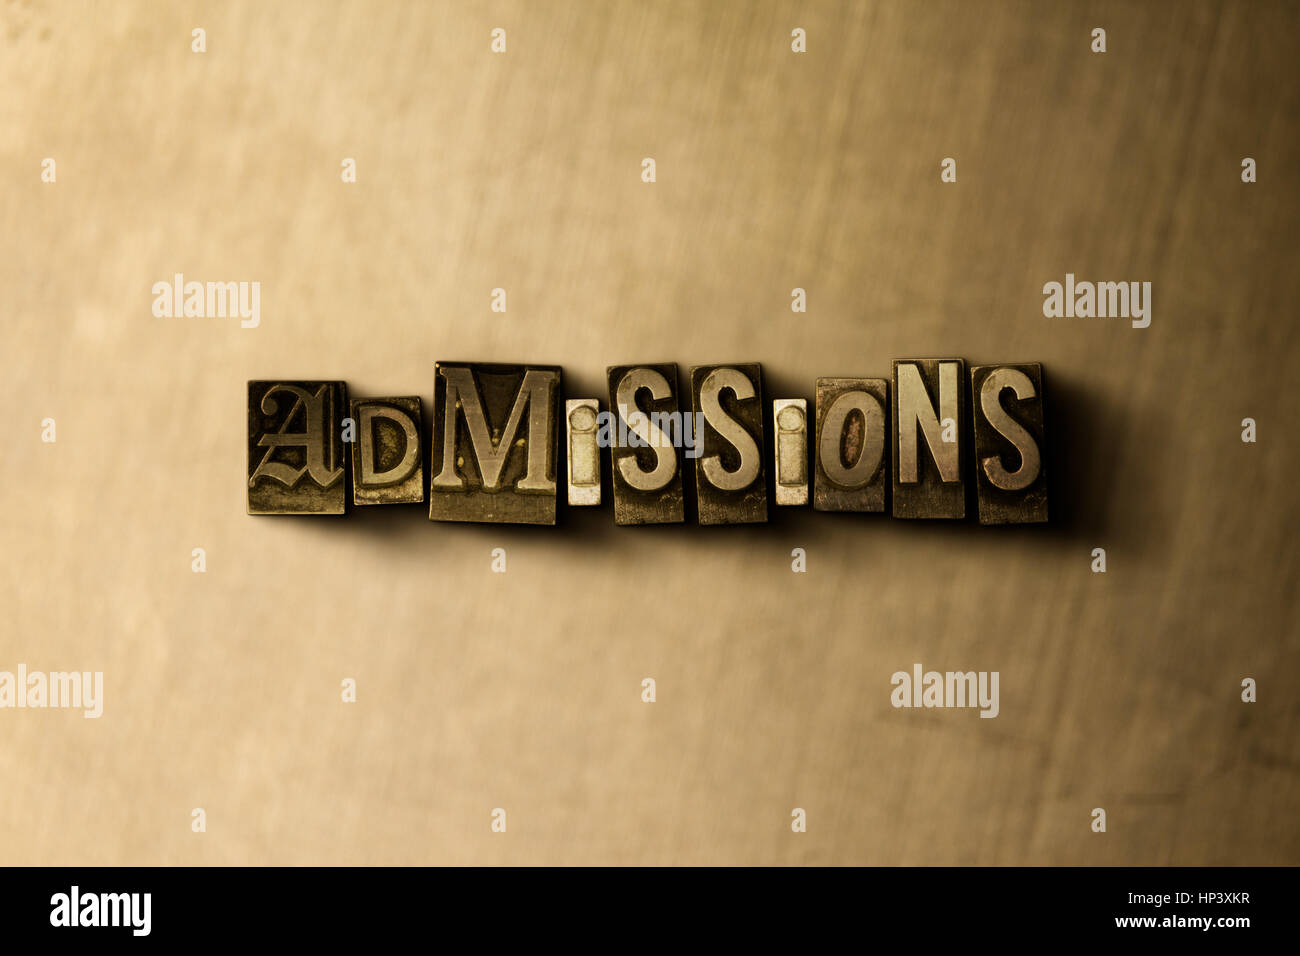 ADMISSIONS - close-up of grungy vintage typeset word on metal backdrop. Royalty free stock illustration.  Can be - Stock Image